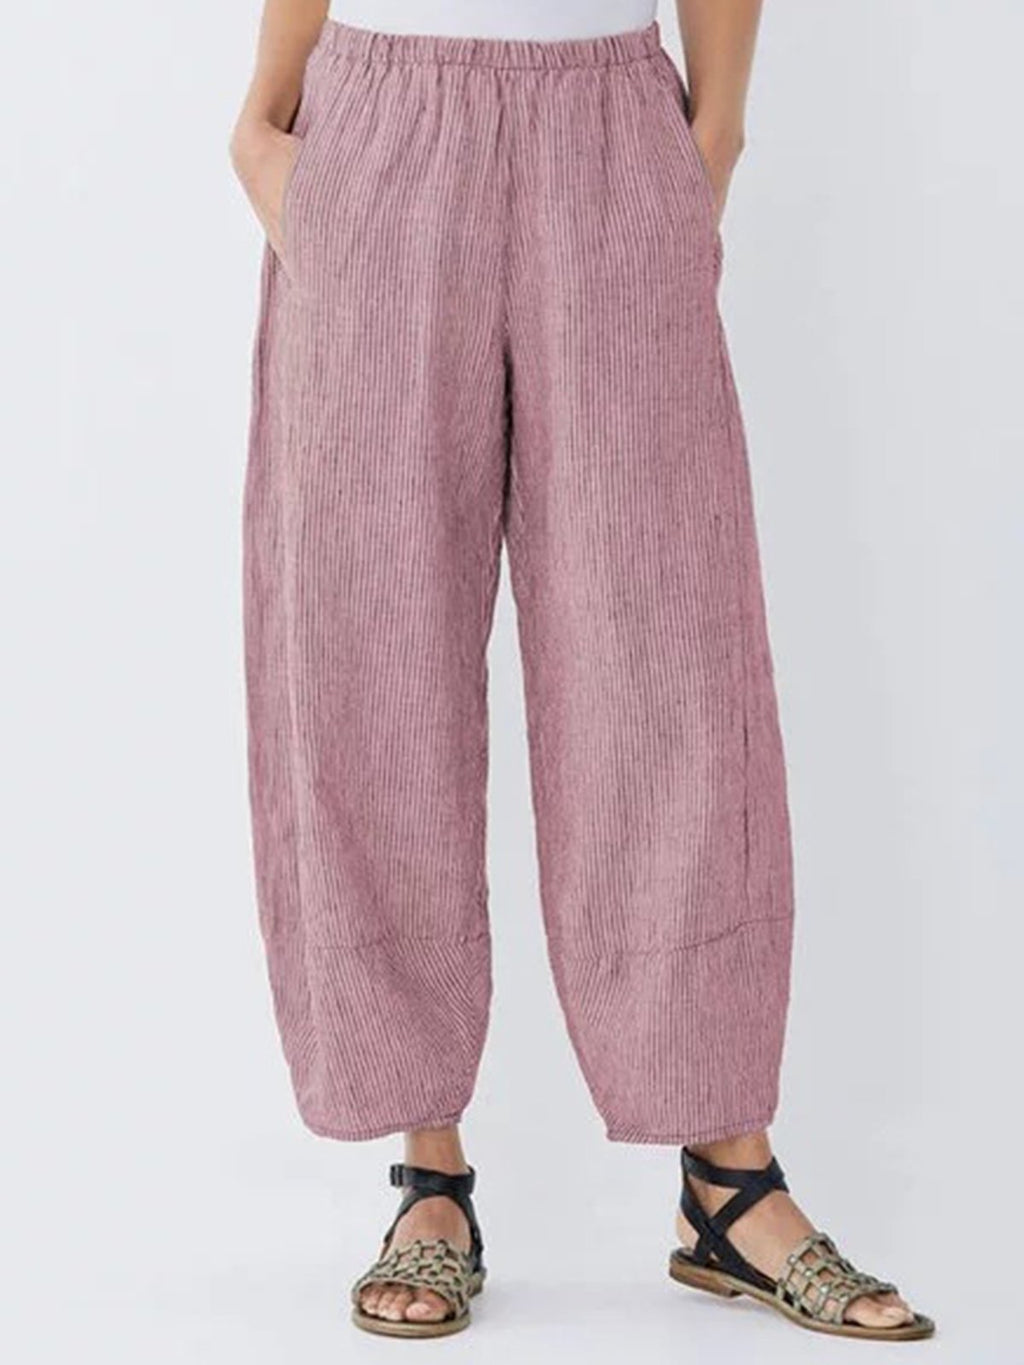 Mittlere Taille aus Baumwolle Plus Size Shift Pants